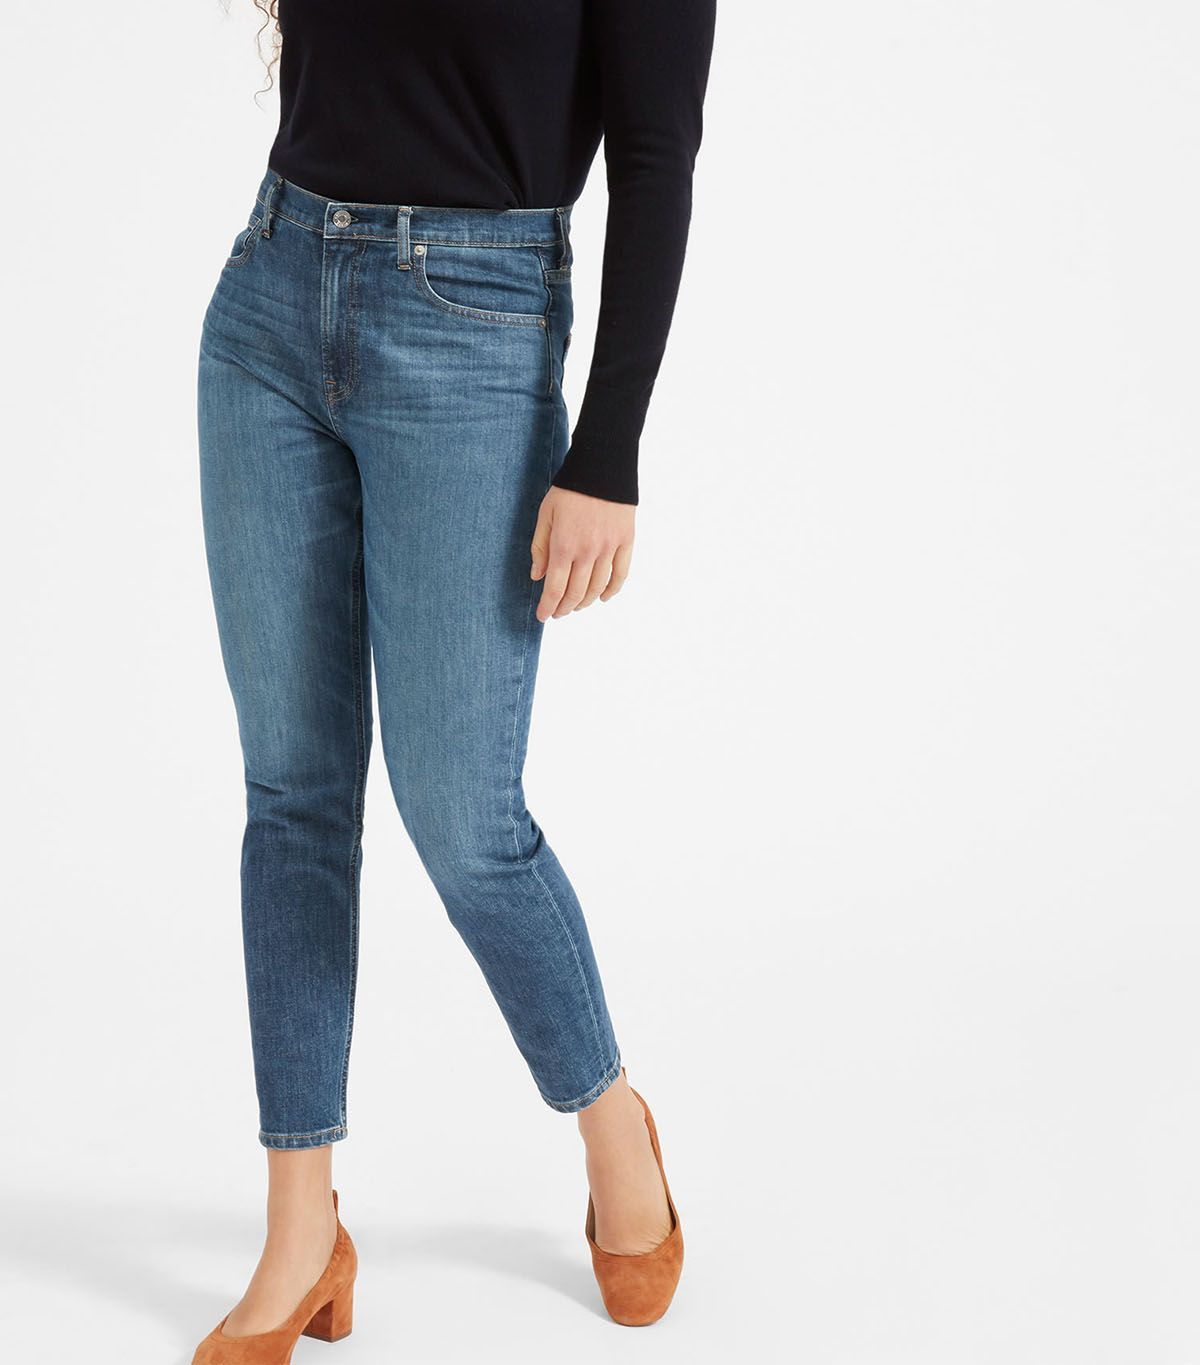 5 Issues Everyone Has With Skinny Jeans (and How to Fix Them) 9